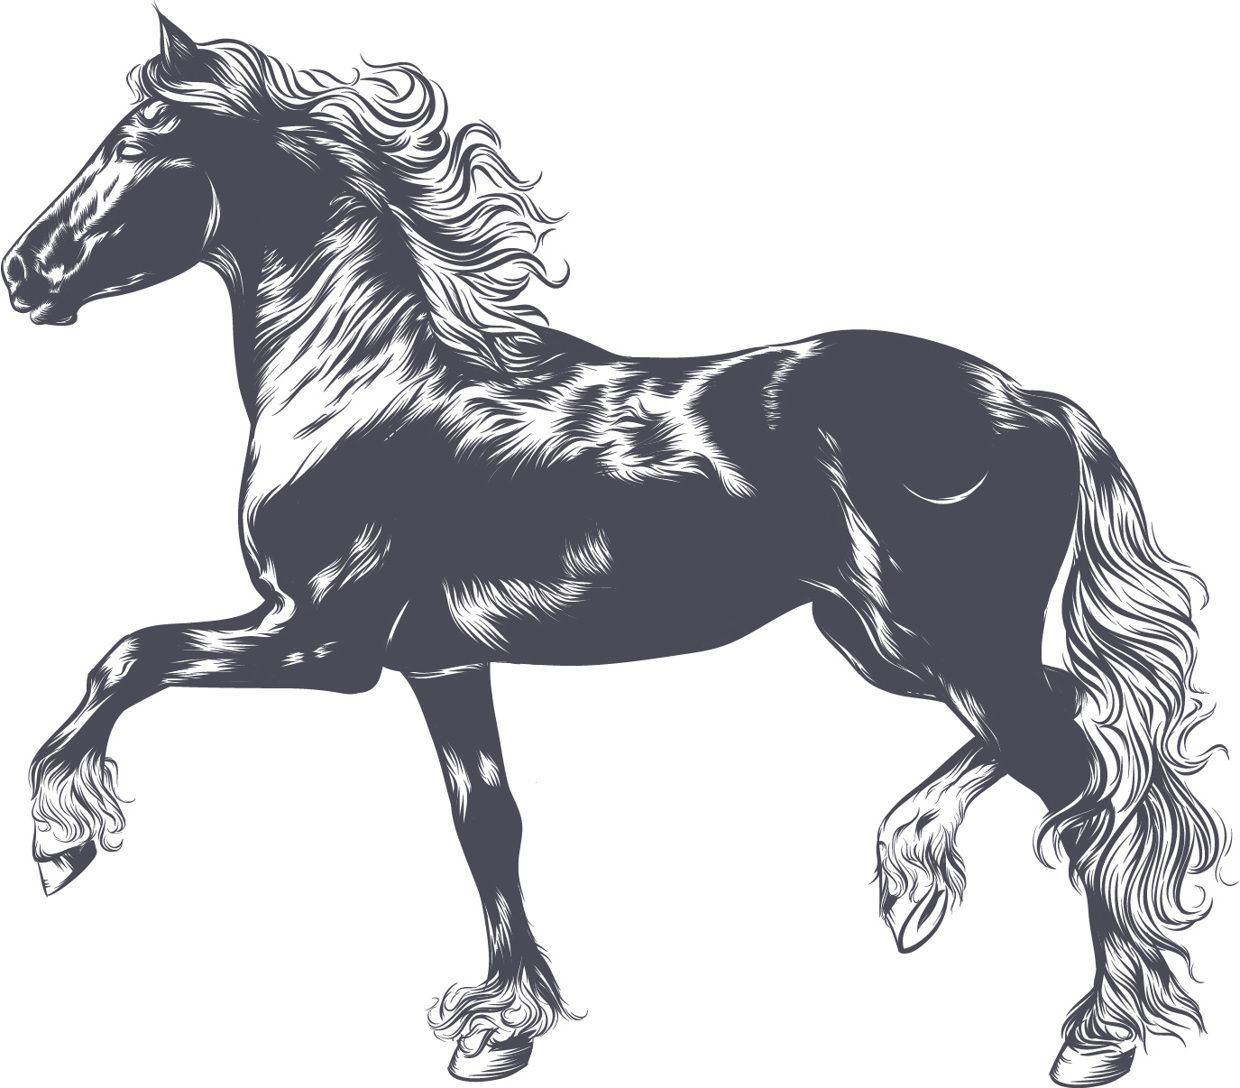 horse illustration | illustration | pinterest | かっこいい馬の画像